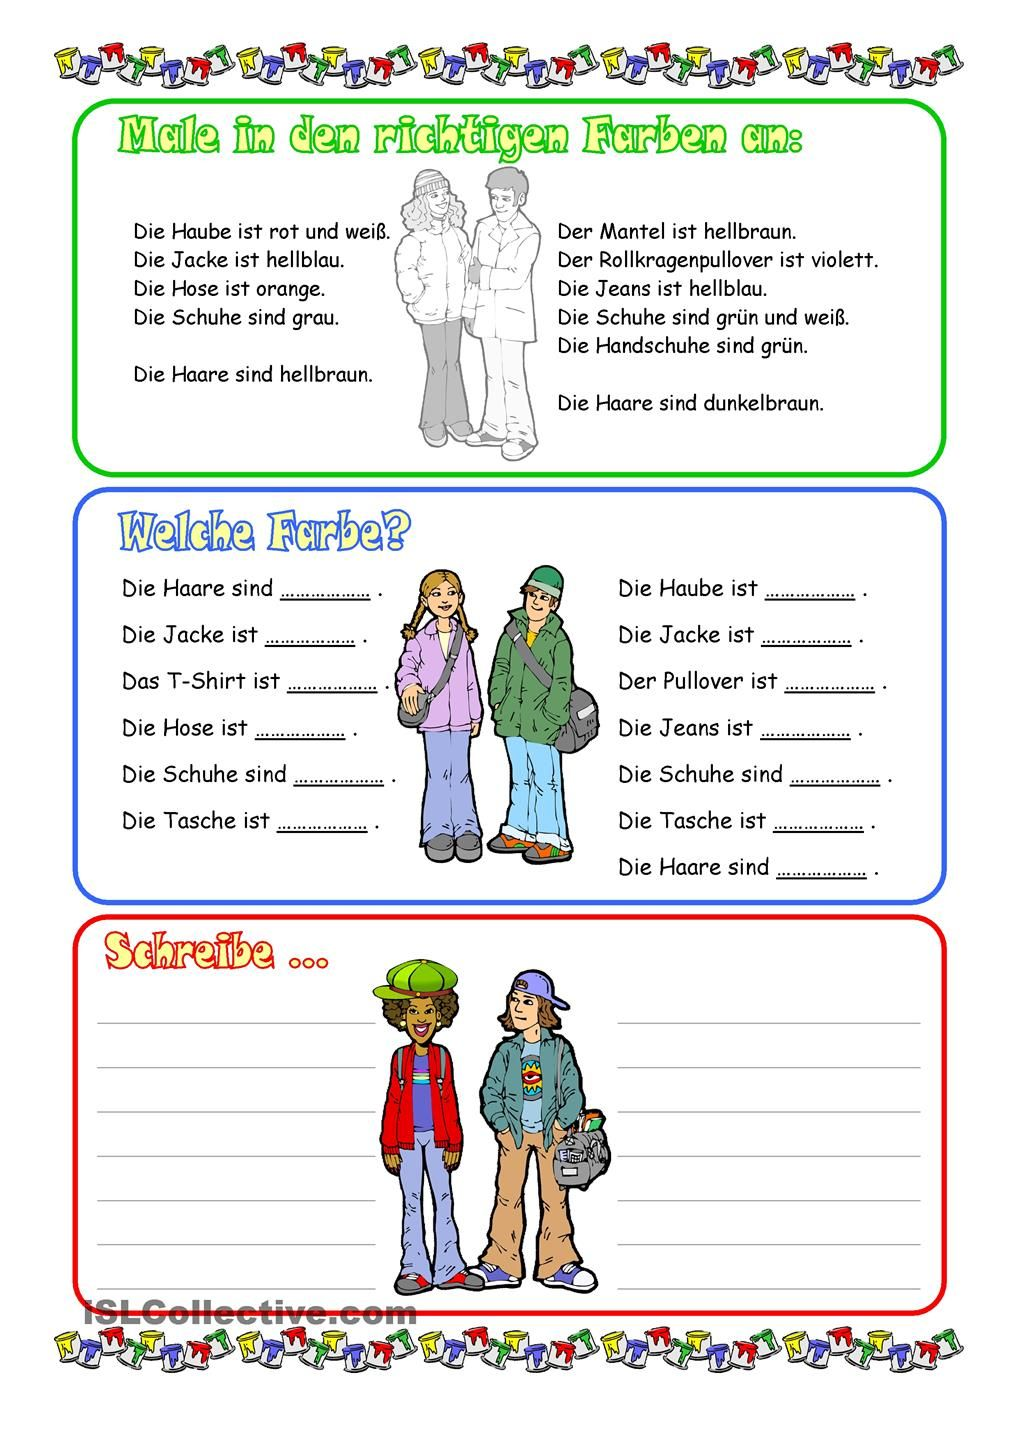 Kleidung und Farben | deutsch | Pinterest | German, Worksheets and ...